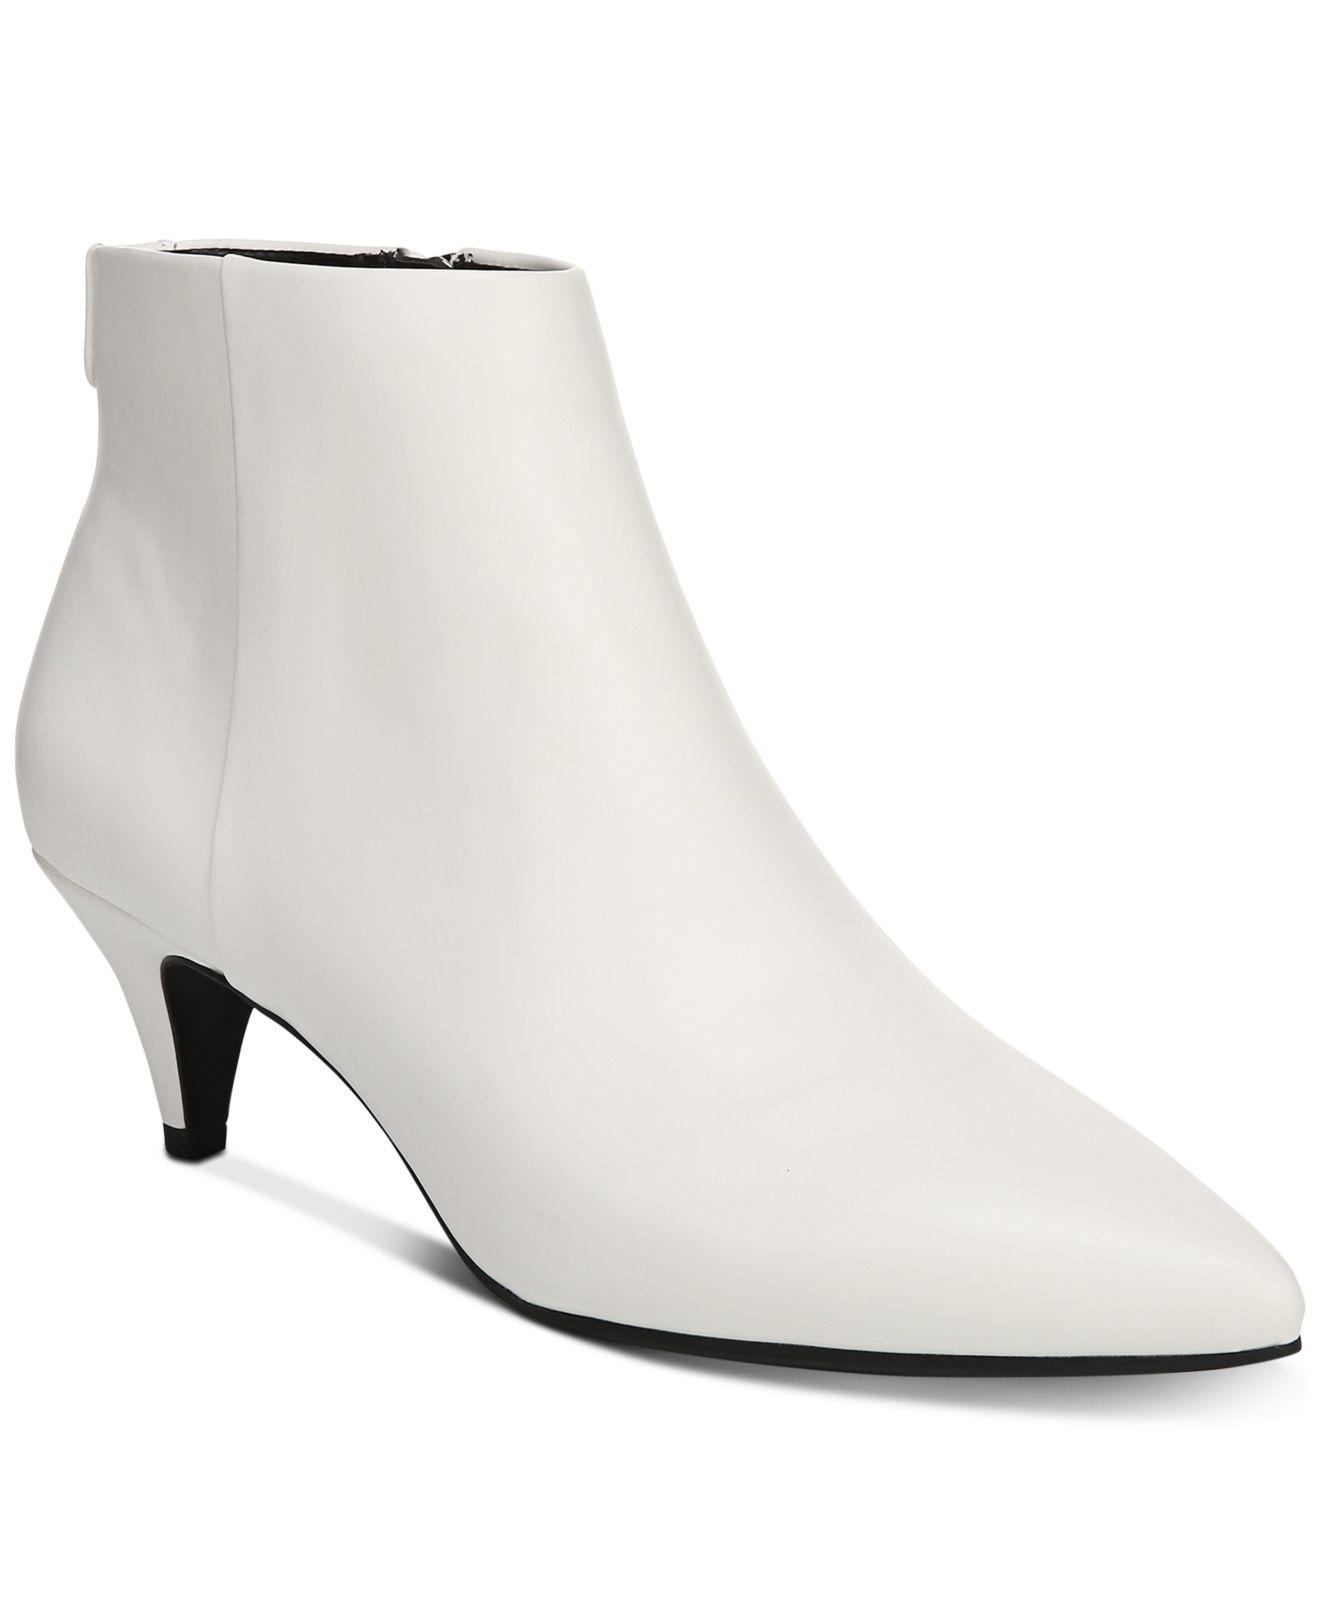 87b753ca23e46 Circus by Sam Edelman. Women s White Kirby Booties ...